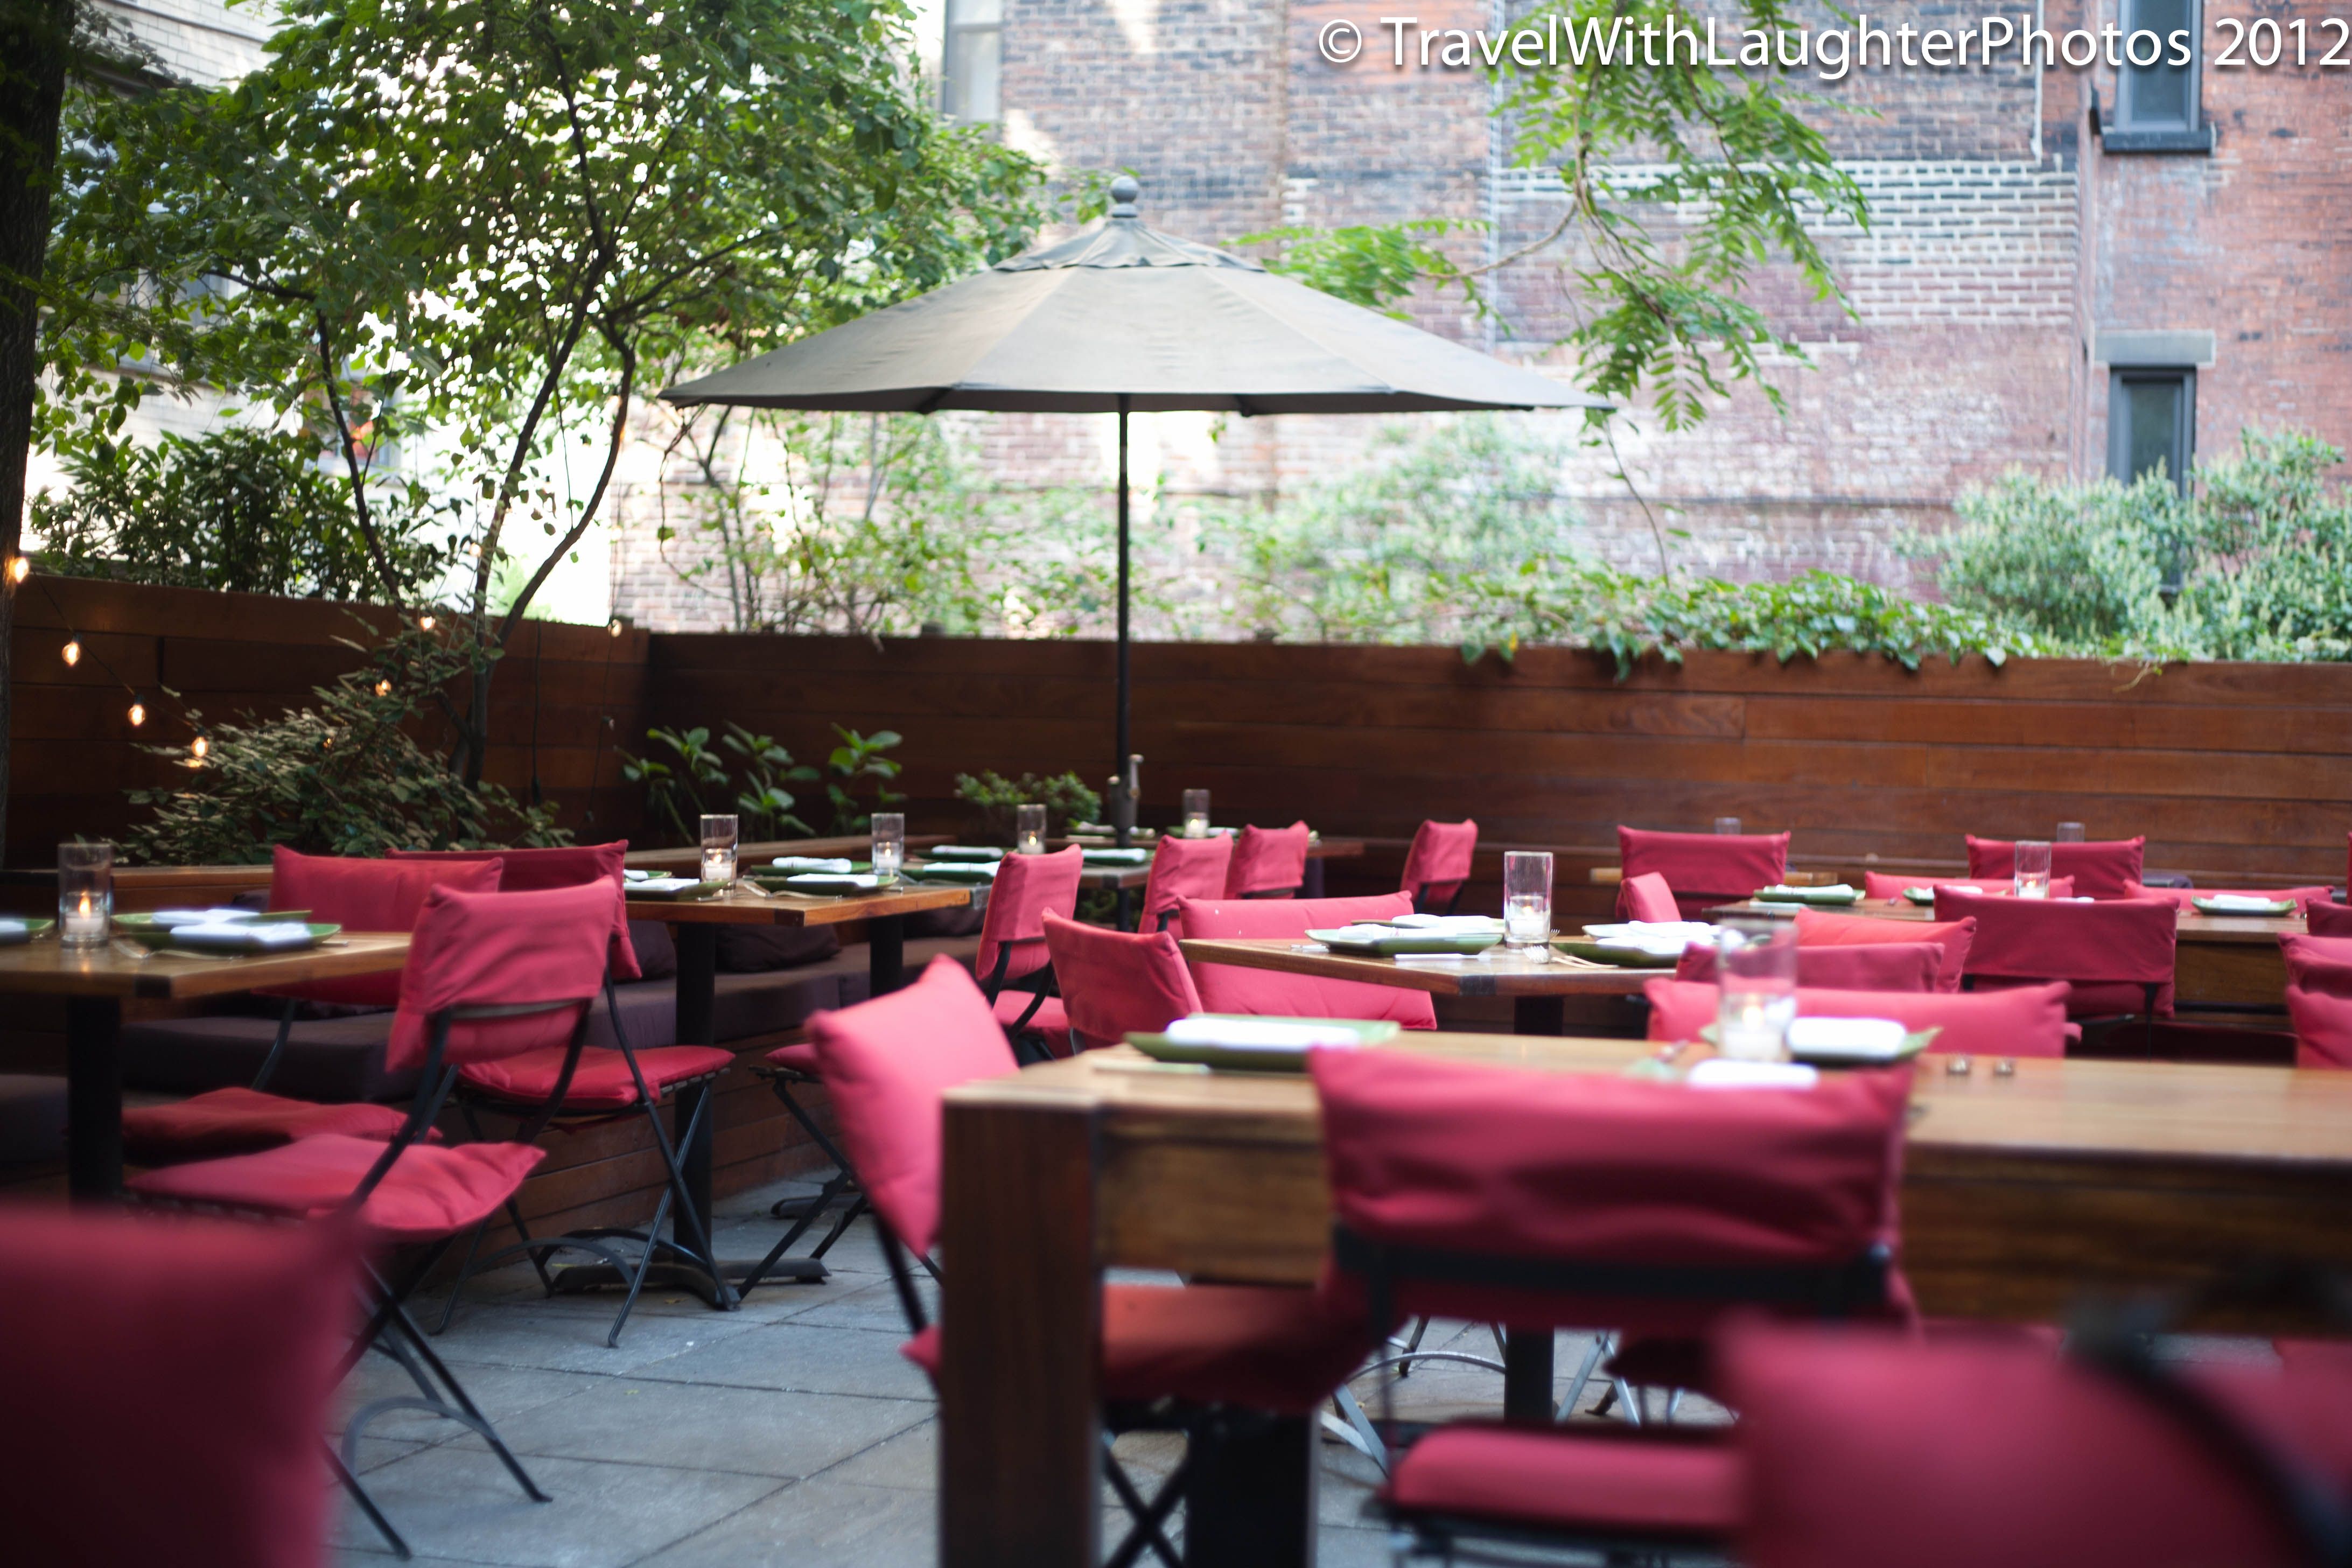 Pure Food And Wine New York NY Travel With Laughter